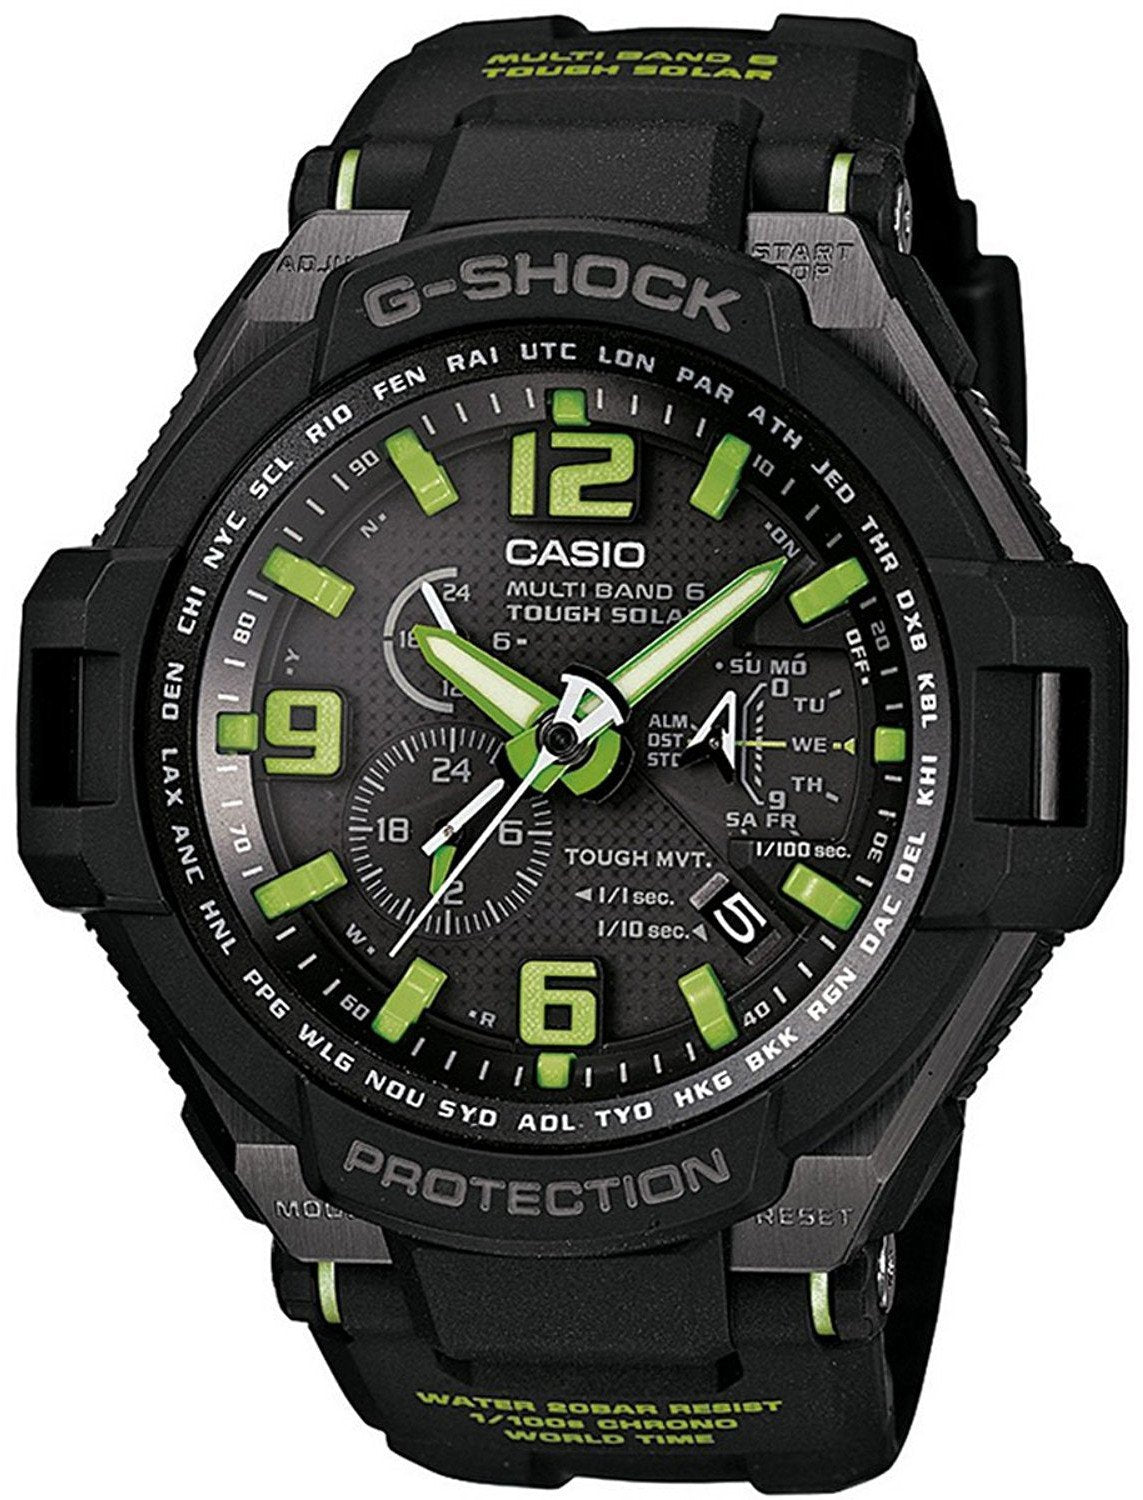 Casio G-Shock Triple G Resist Multi-Band 6 Atomic GW-4000-1A3 Men's Watch